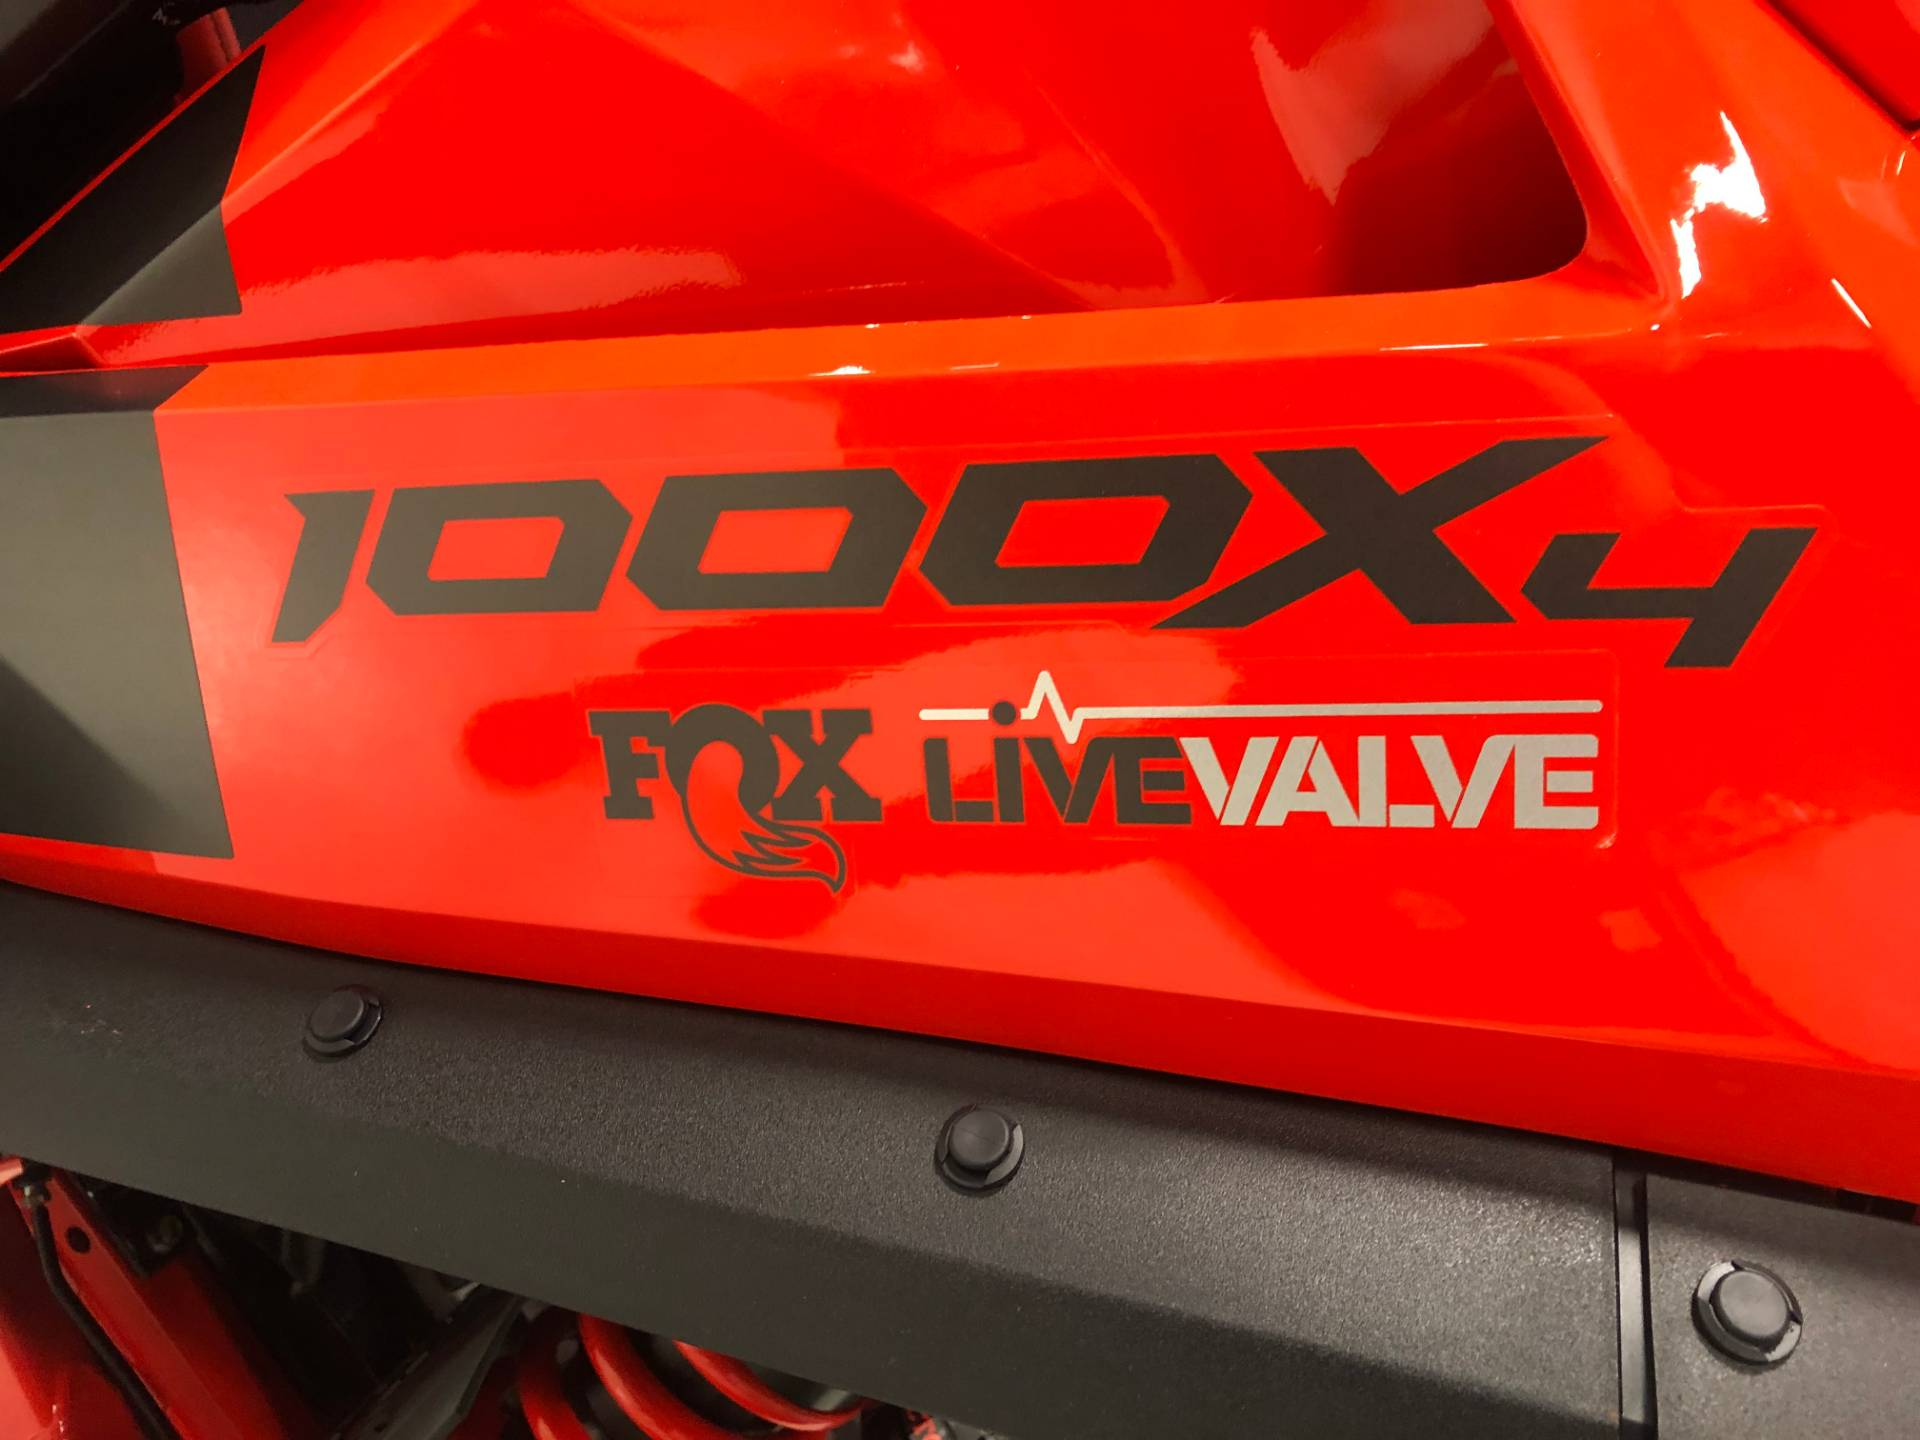 2020 Honda Talon 1000X-4 FOX Live Valve in Ottawa, Ohio - Photo 3